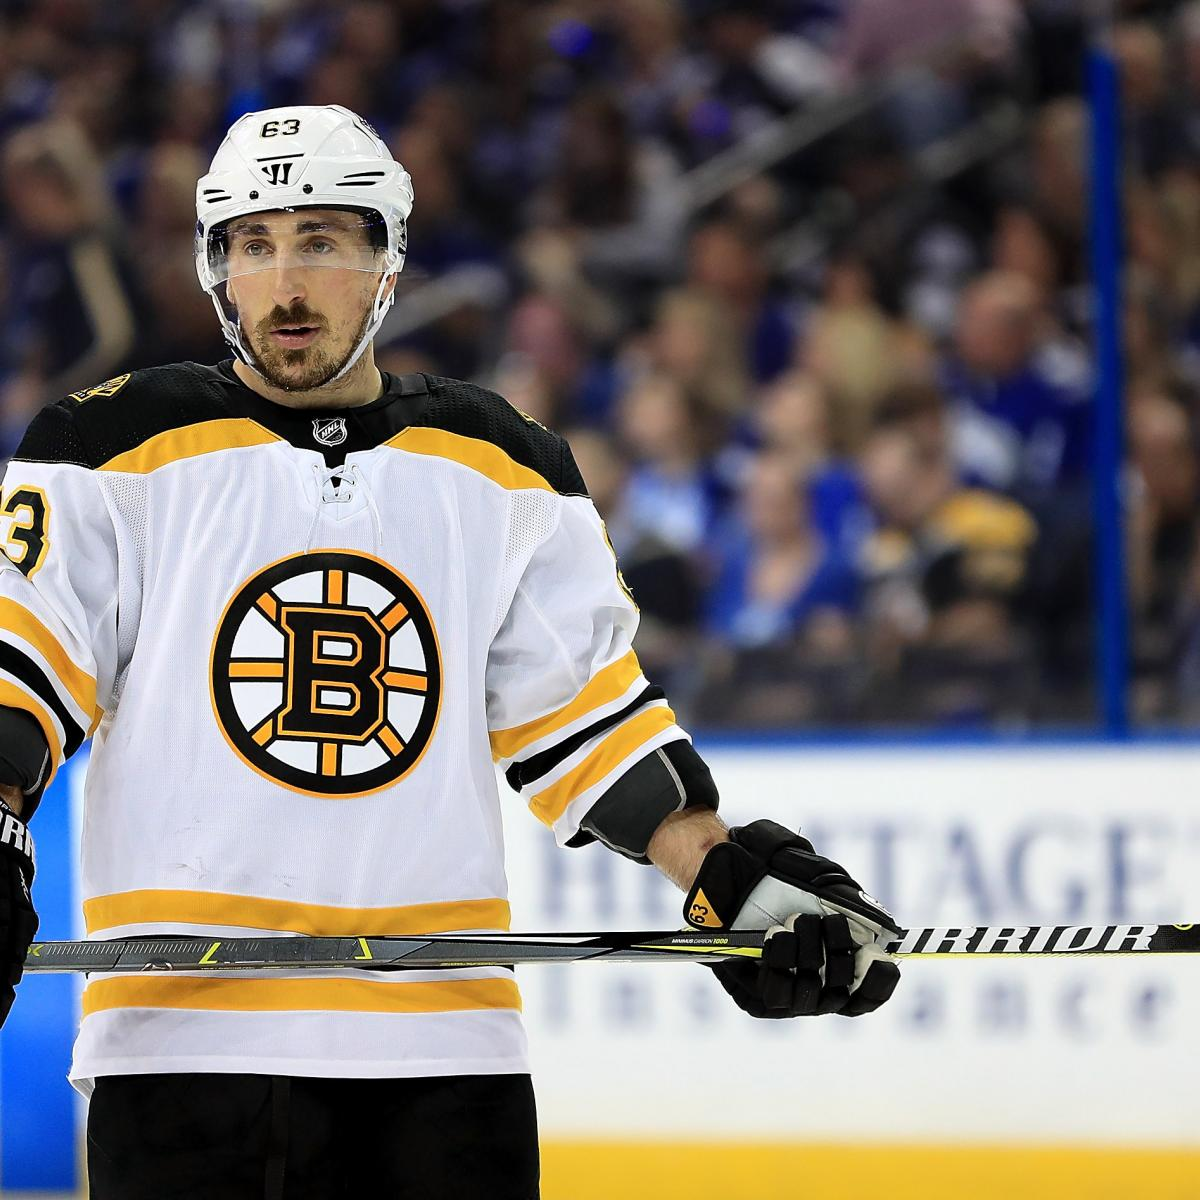 Brad Marchand On Licking Opponents: 'I've Got To Cut That